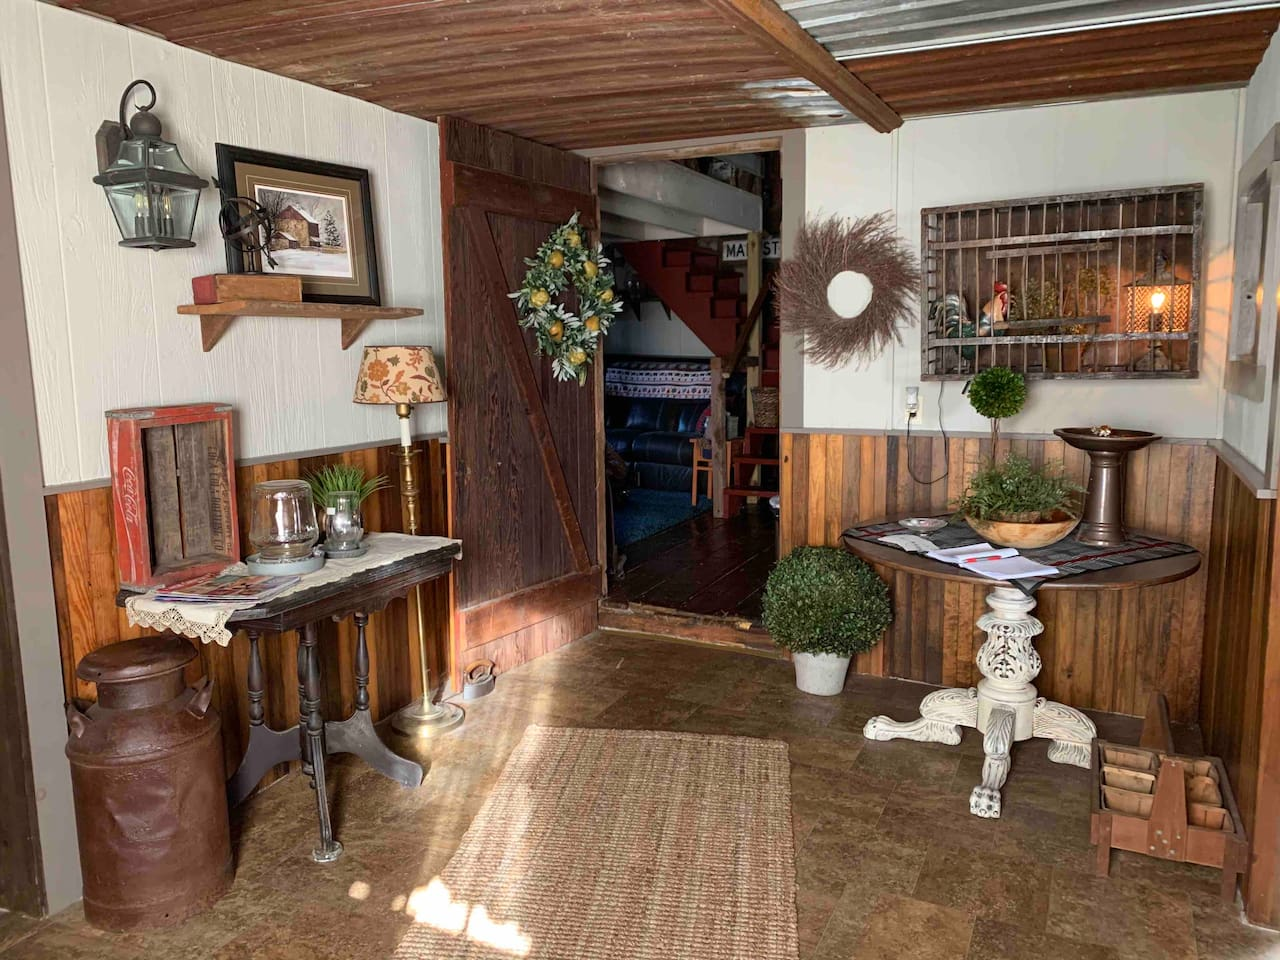 The entry into The Barn is bright and inviting. Here you will find our guestbook and we hope you will sign and share your wonderful experience.